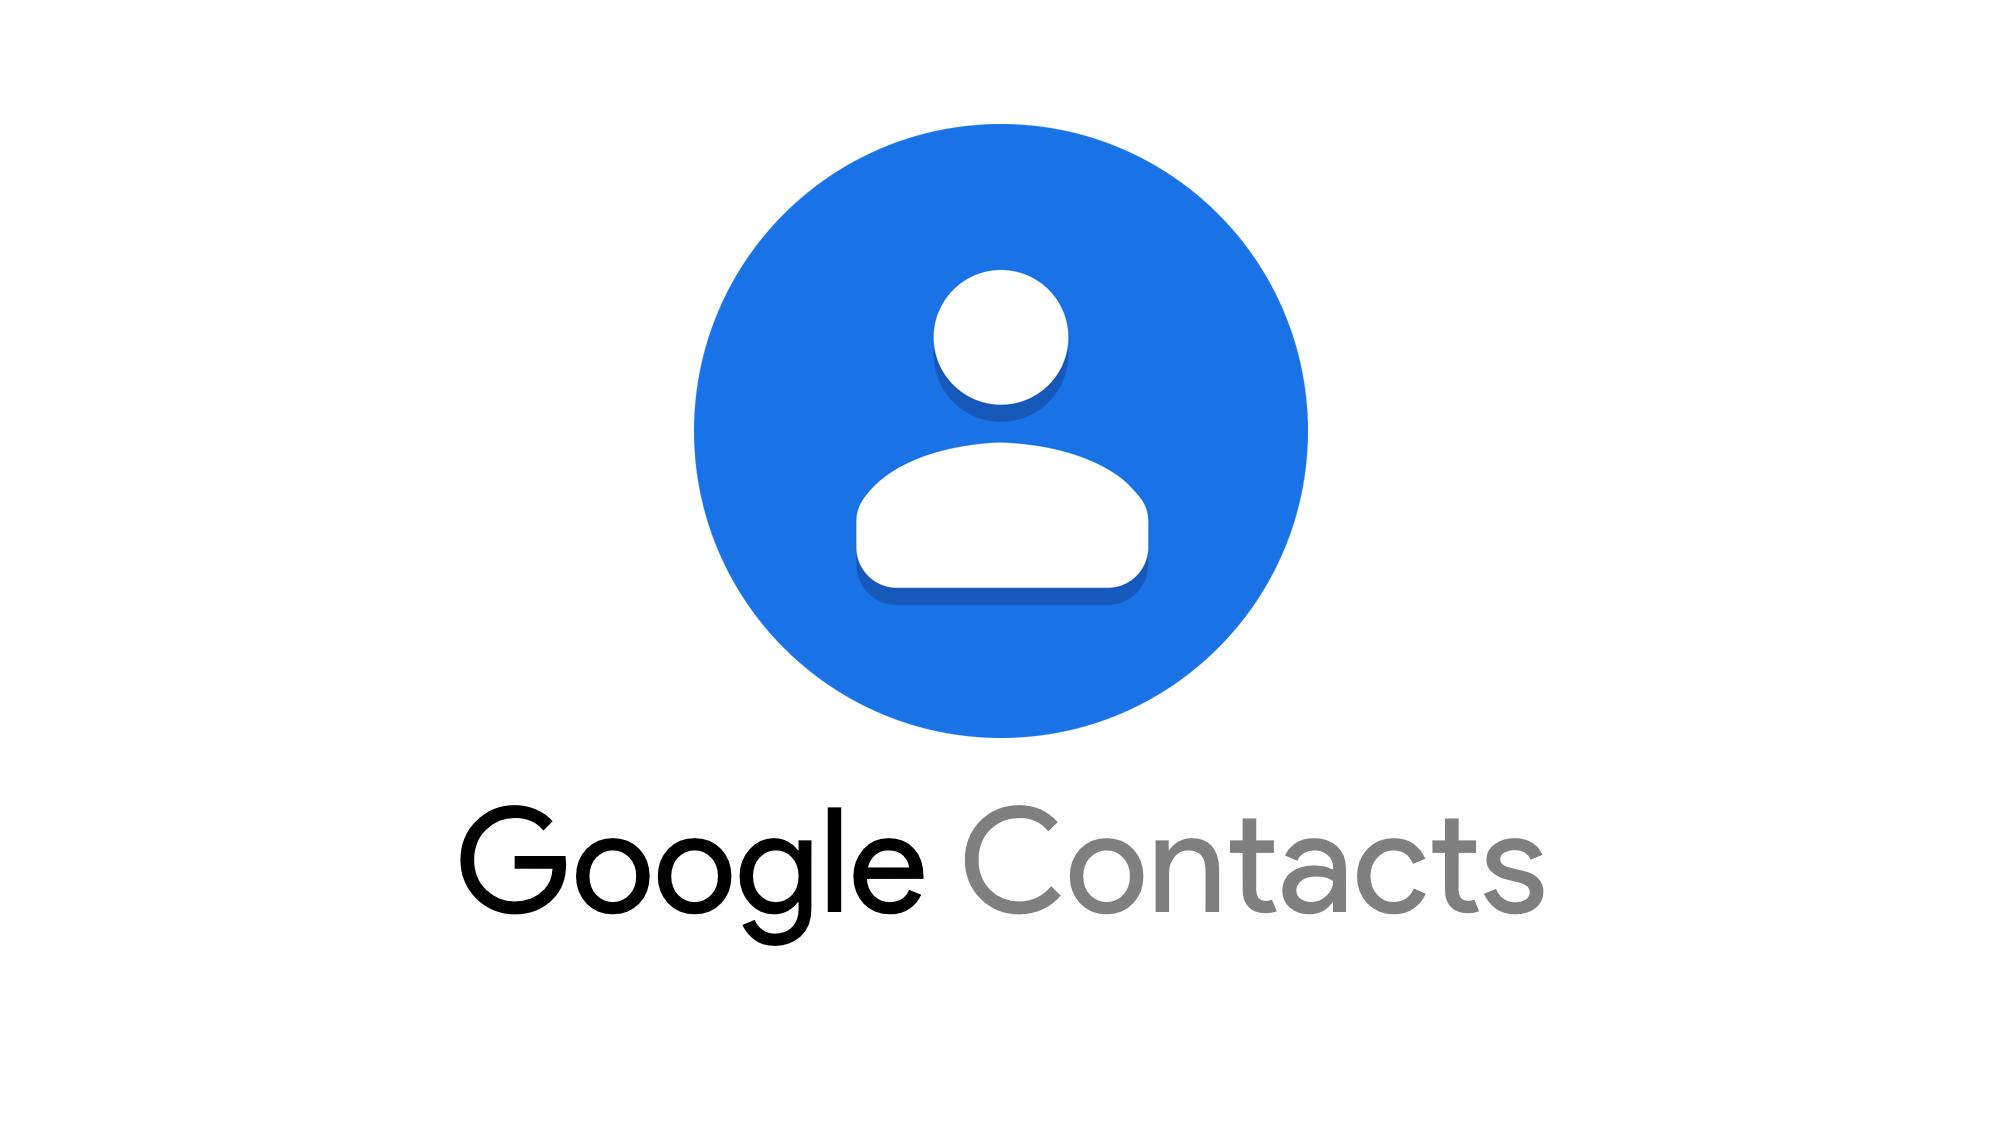 how to export google contacts to csv file